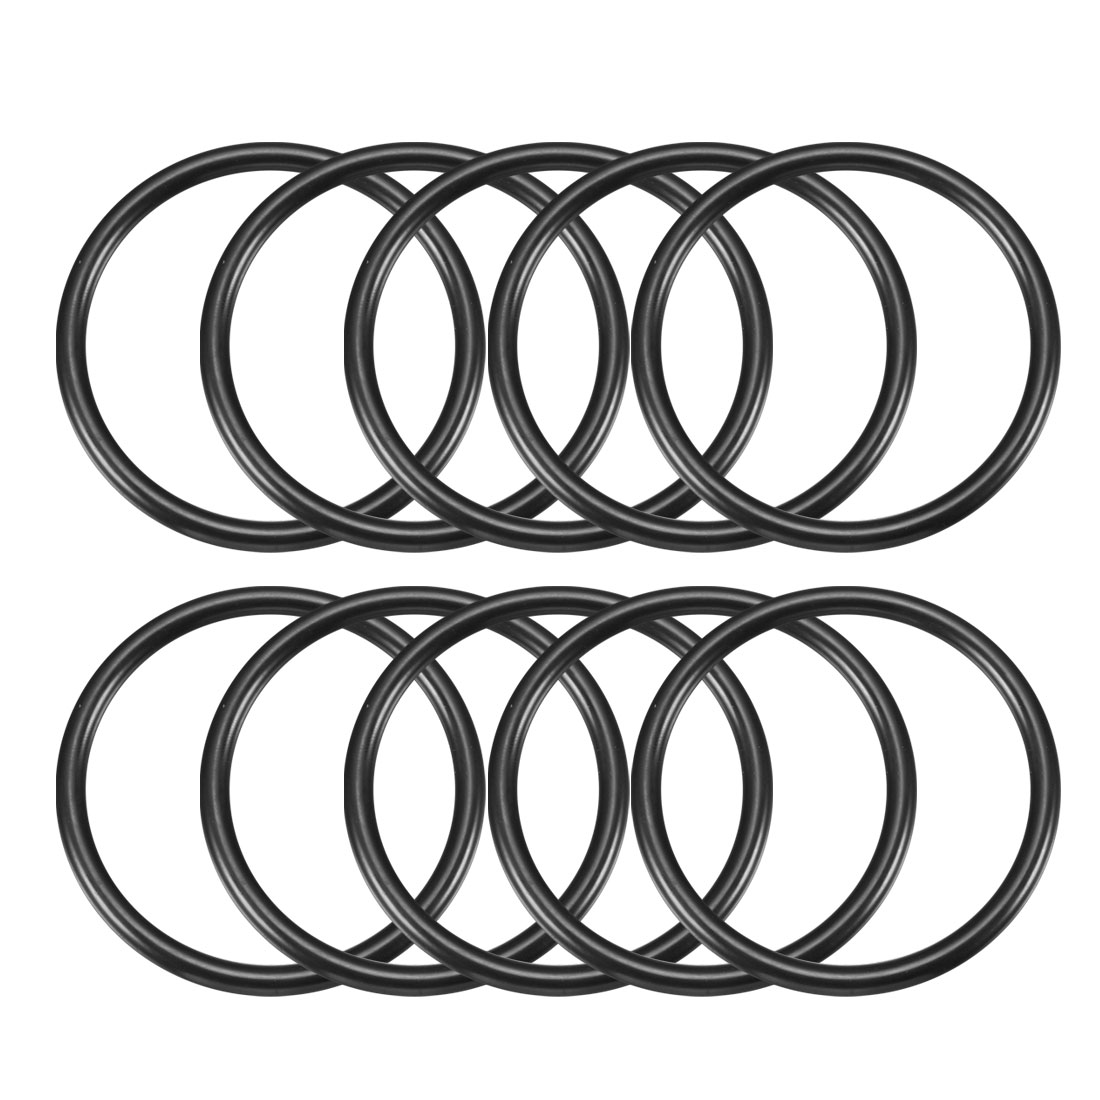 Automobile 75mm x 5.7mm O Rings Hole Sealing Gasket Washer 10 Pcs